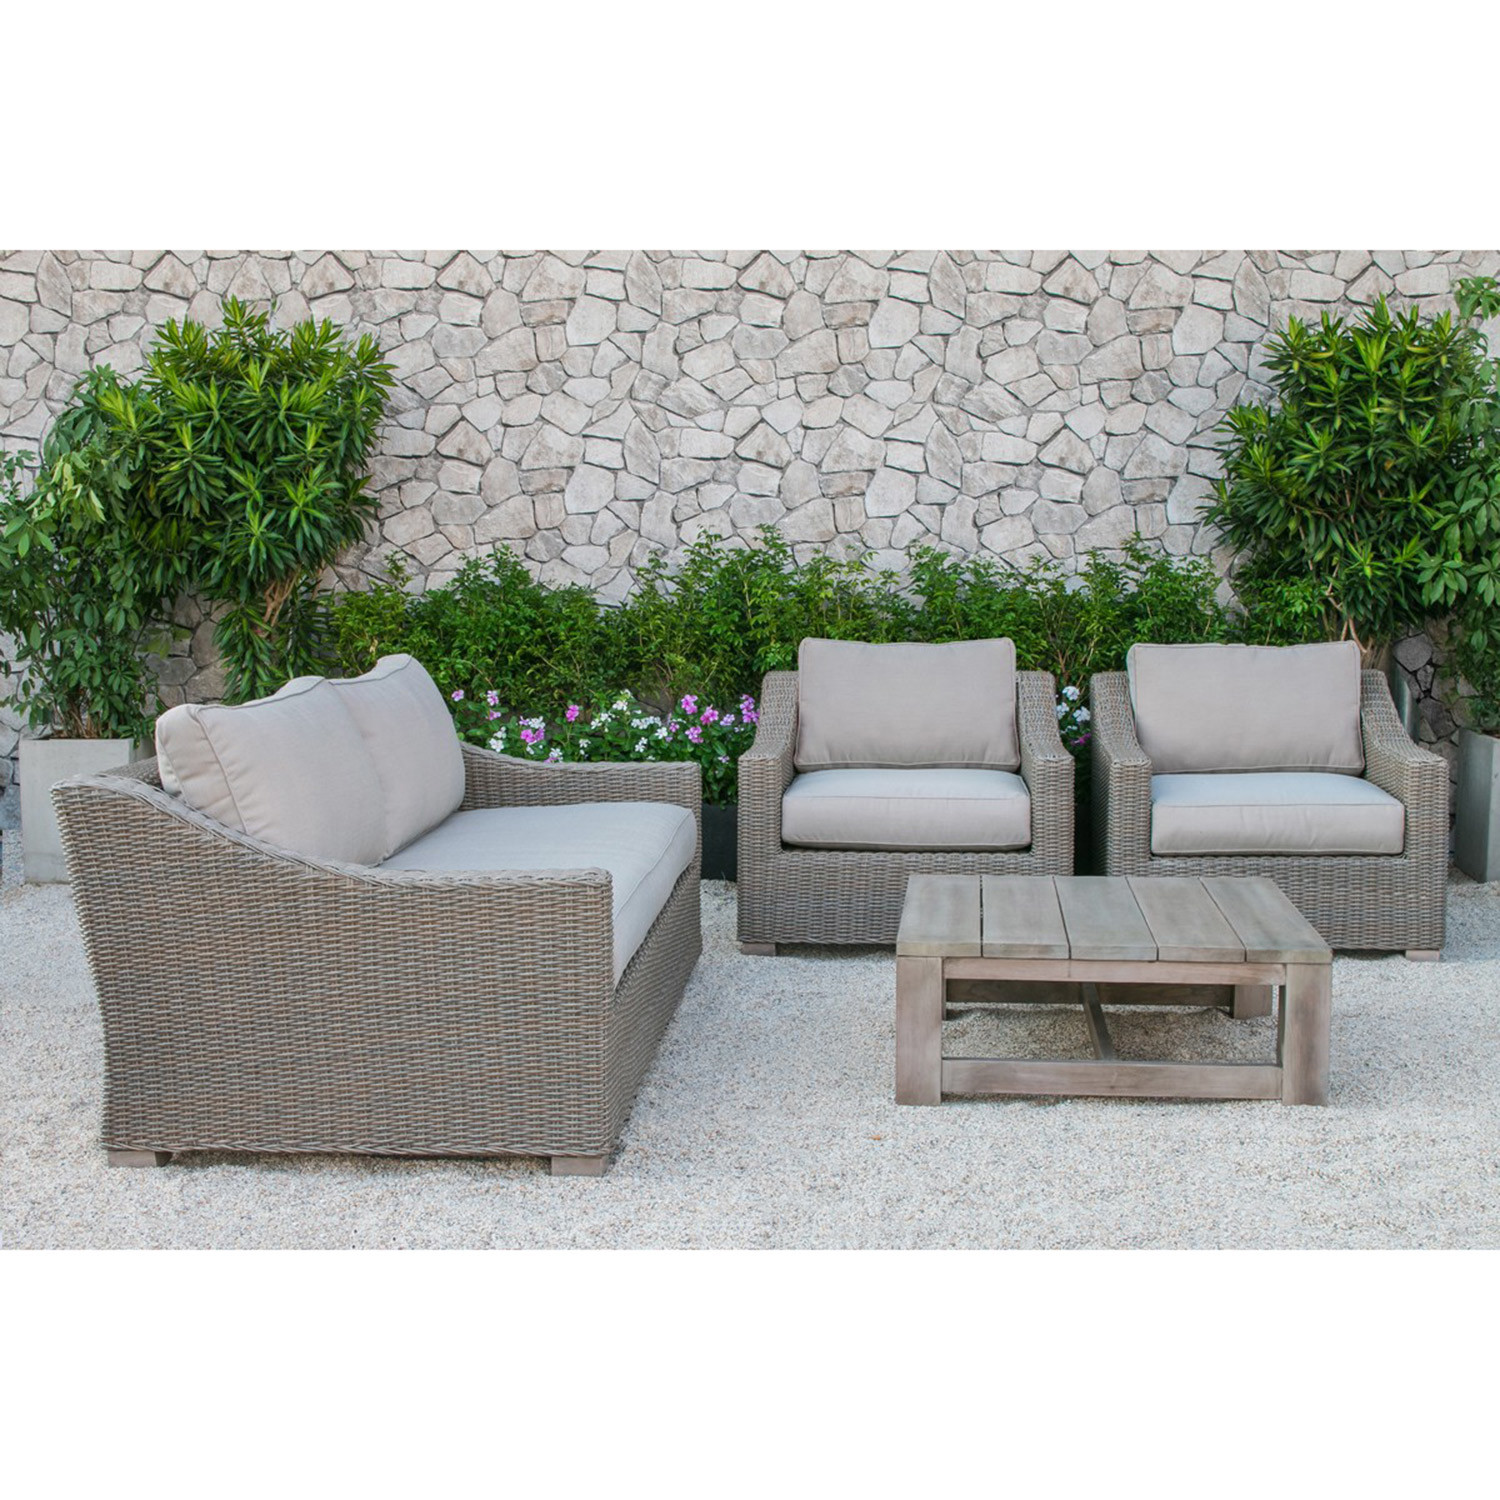 Renava Palisades Outdoor Wicker Sofa Set VIG Touch of Modern